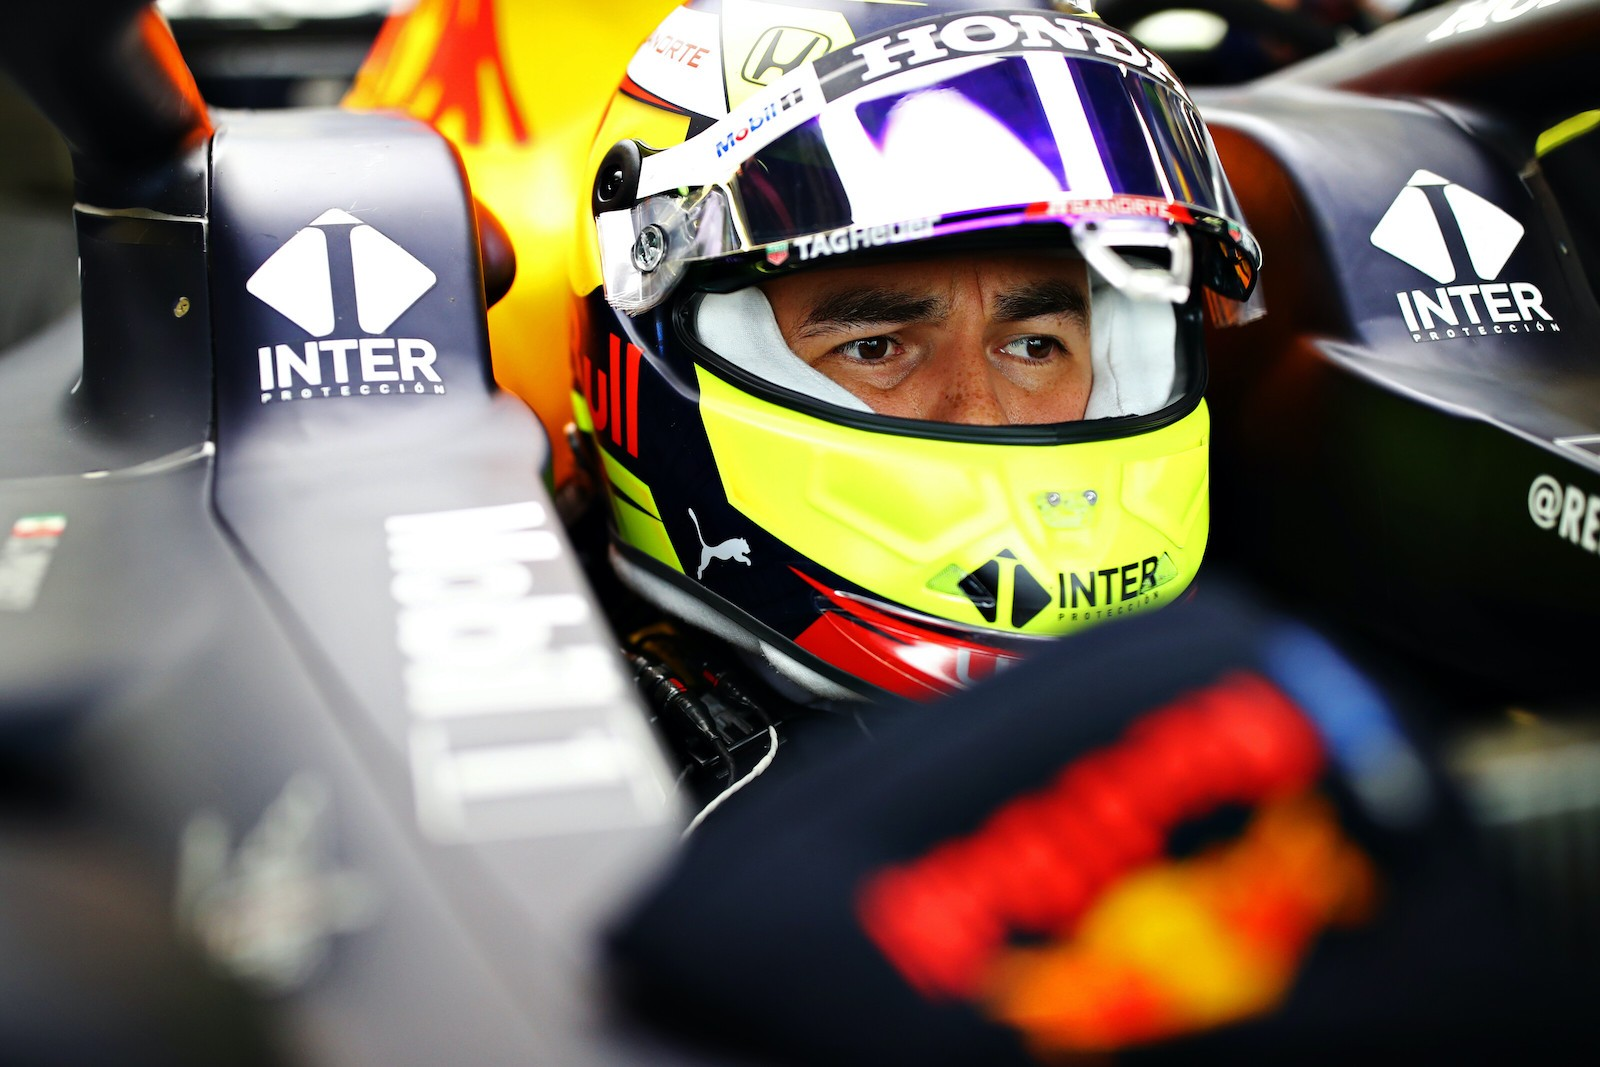 GALLERY - PEREZ MEETS RED BULL CAR ON WET SILVERSTONE